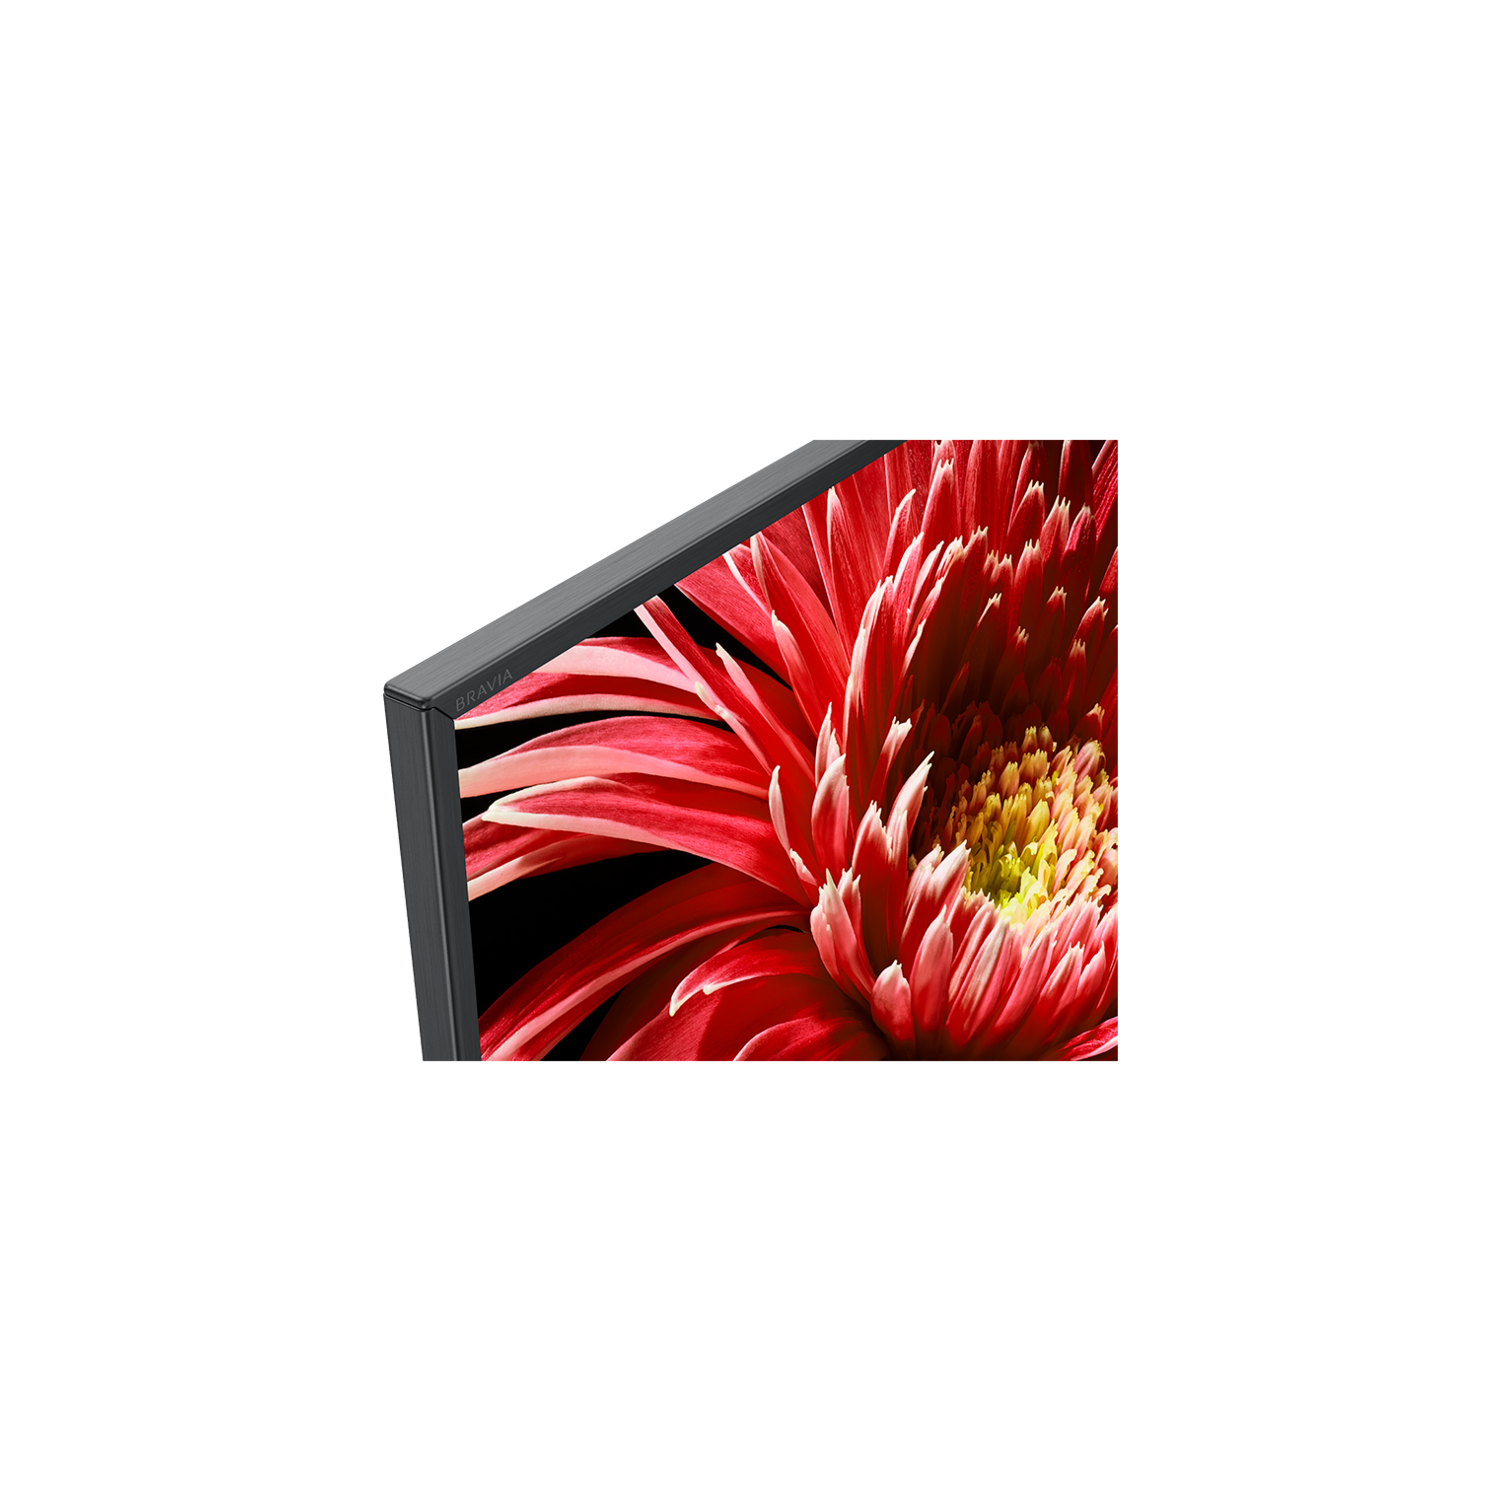 """85"""" X85G LED 4K Ultra HD High Dynamic Range Smart Android TV, , product-image"""